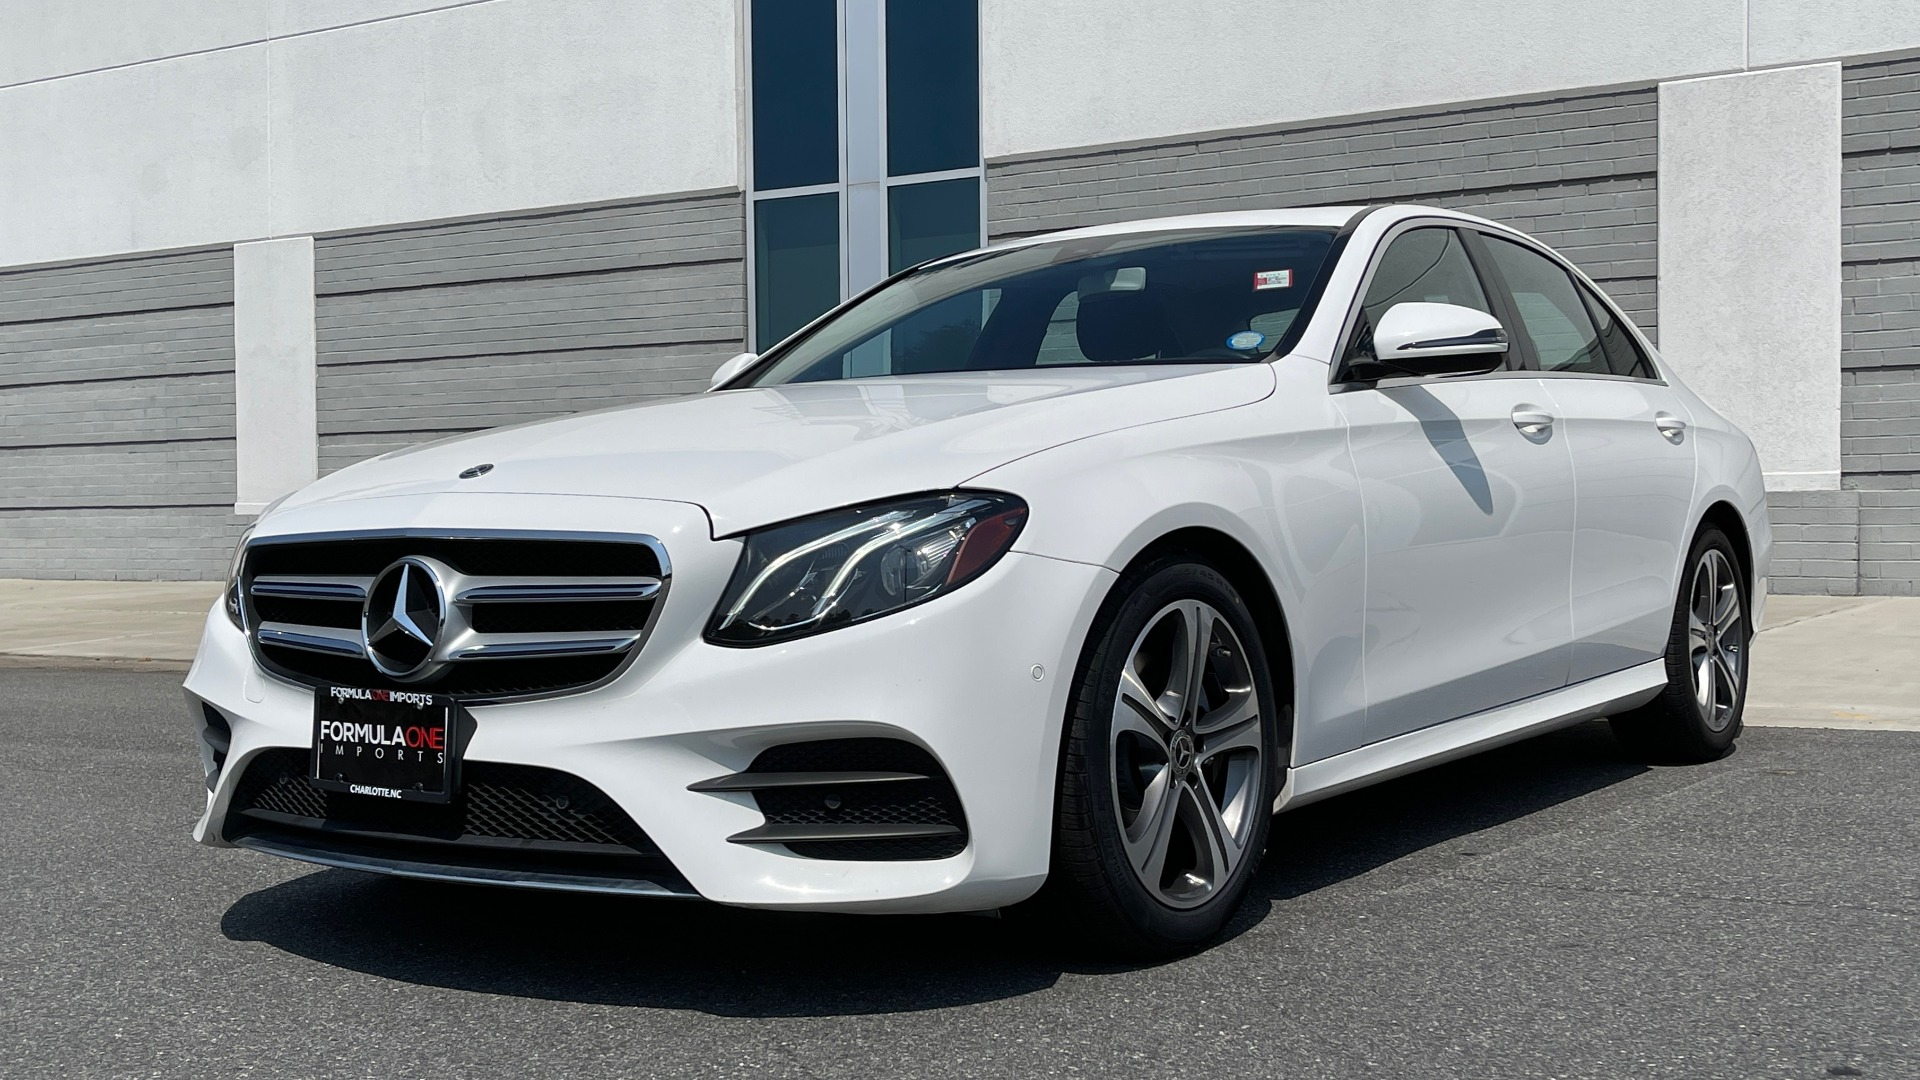 Used 2018 Mercedes-Benz E-CLASS E 300 / 2.0L I4 TURBO / NAV / BSA / SUNROOF / REARVIEW for sale Sold at Formula Imports in Charlotte NC 28227 4